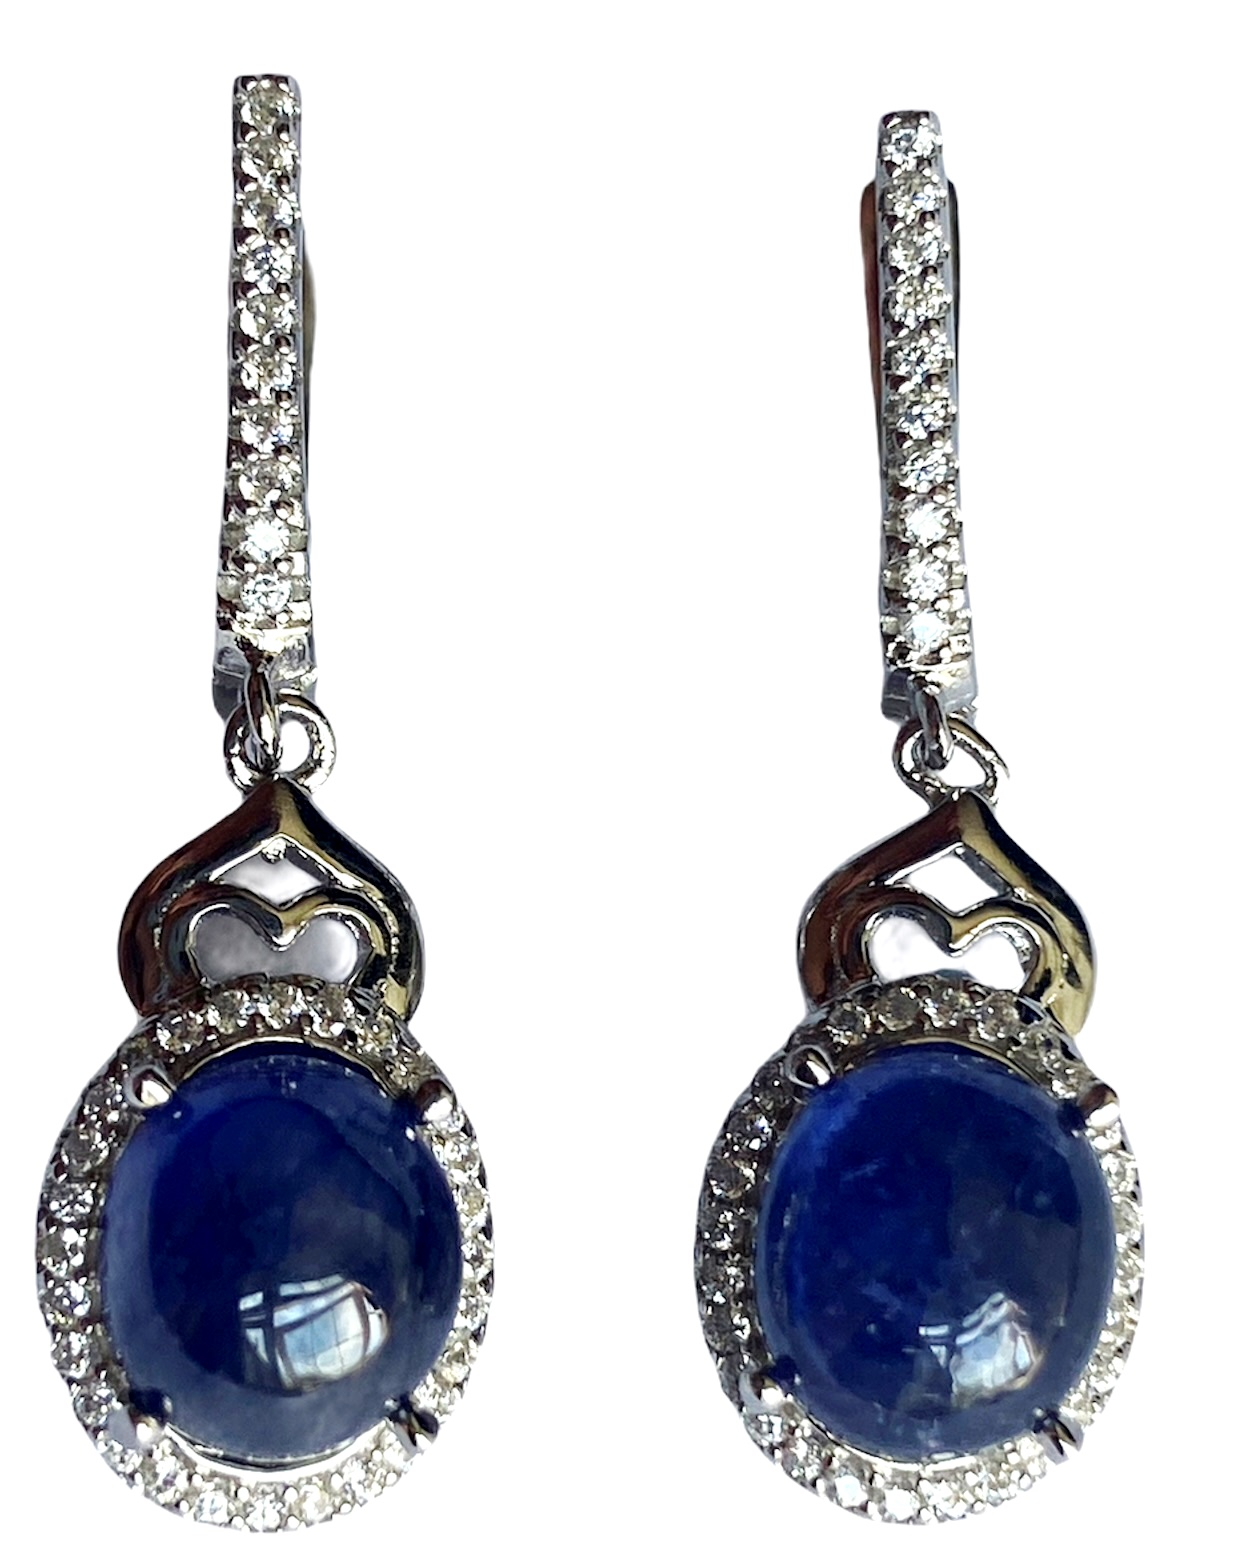 A pair of 925 silver drop earrings set with cabochon cut sapphires and white stones, L. 3.1cm.